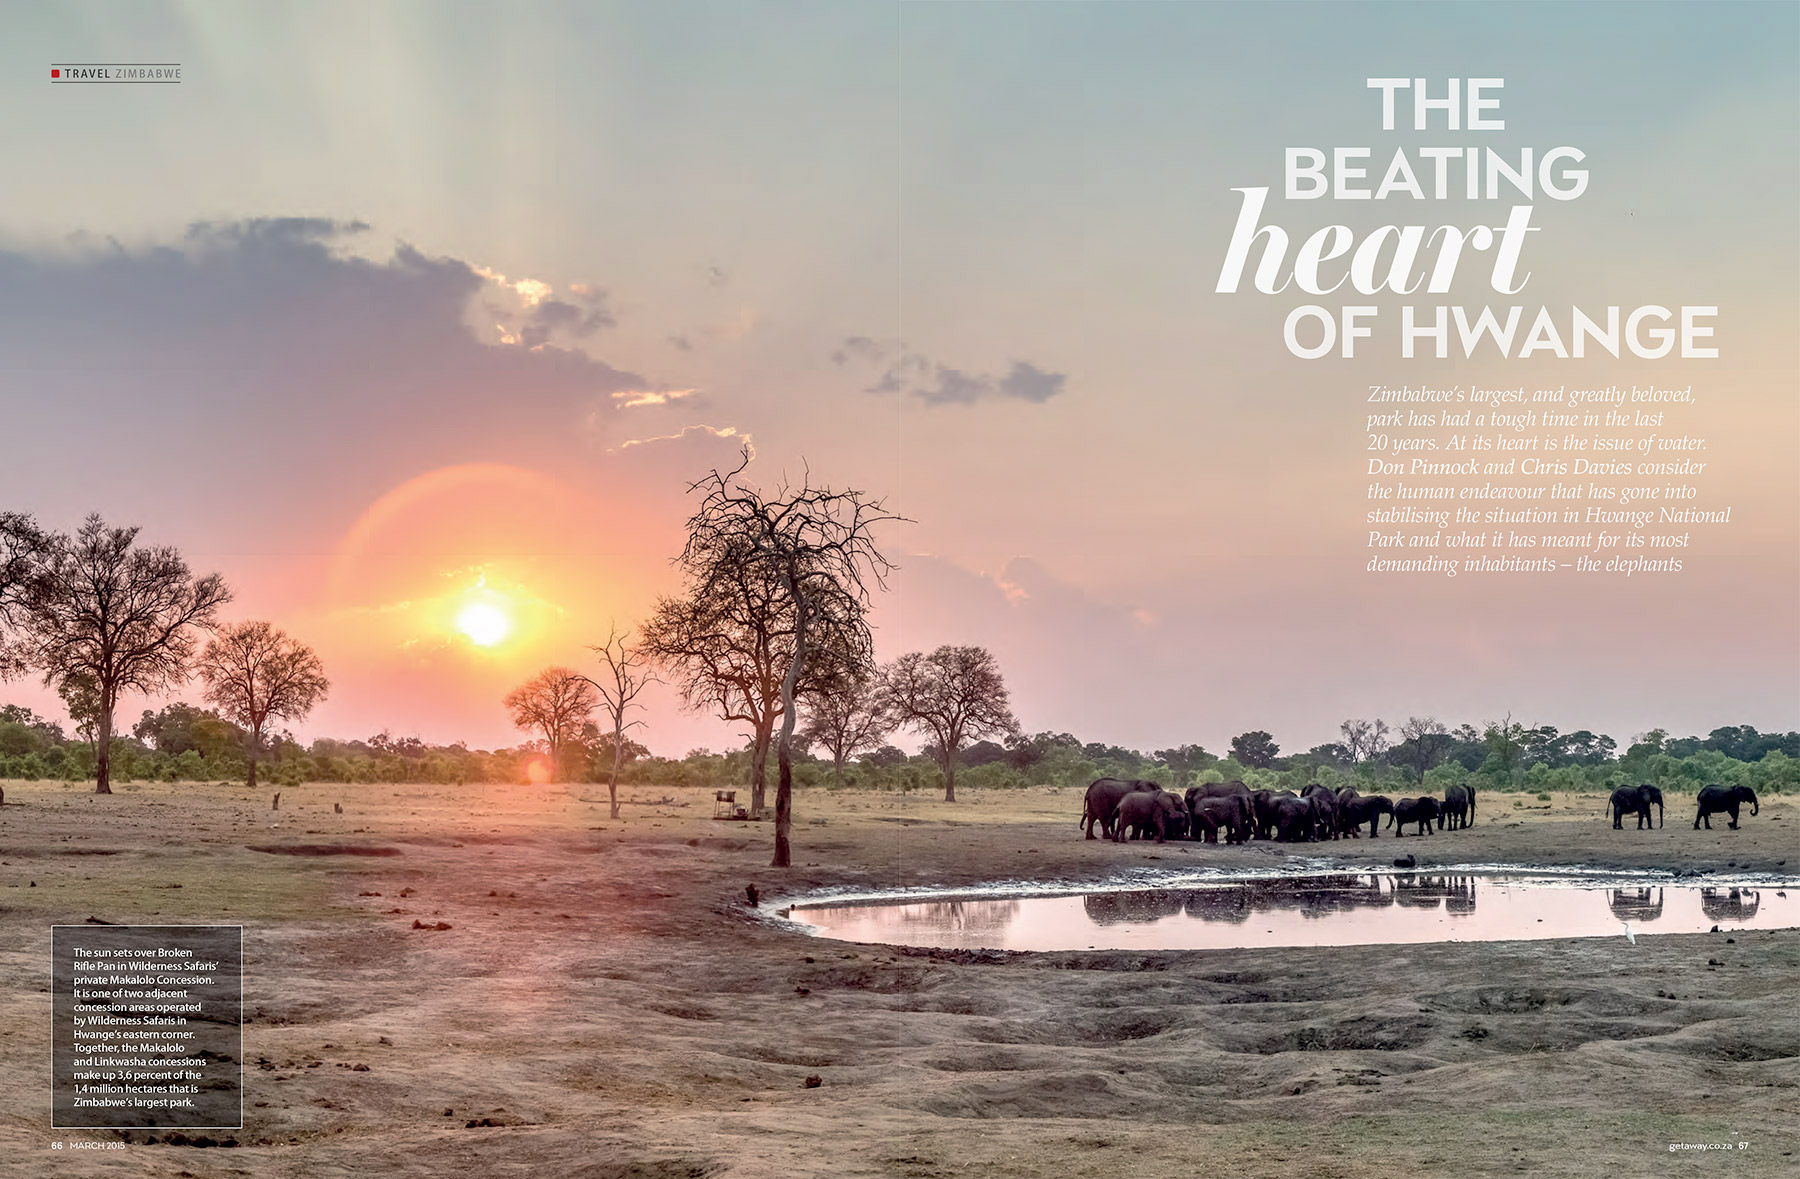 Getaway Magazine - Zimbabwe's Hwange National Park is famous for its elephants. But elephants are thirsty creatures and Hwange has barely enough water for them all to drink.